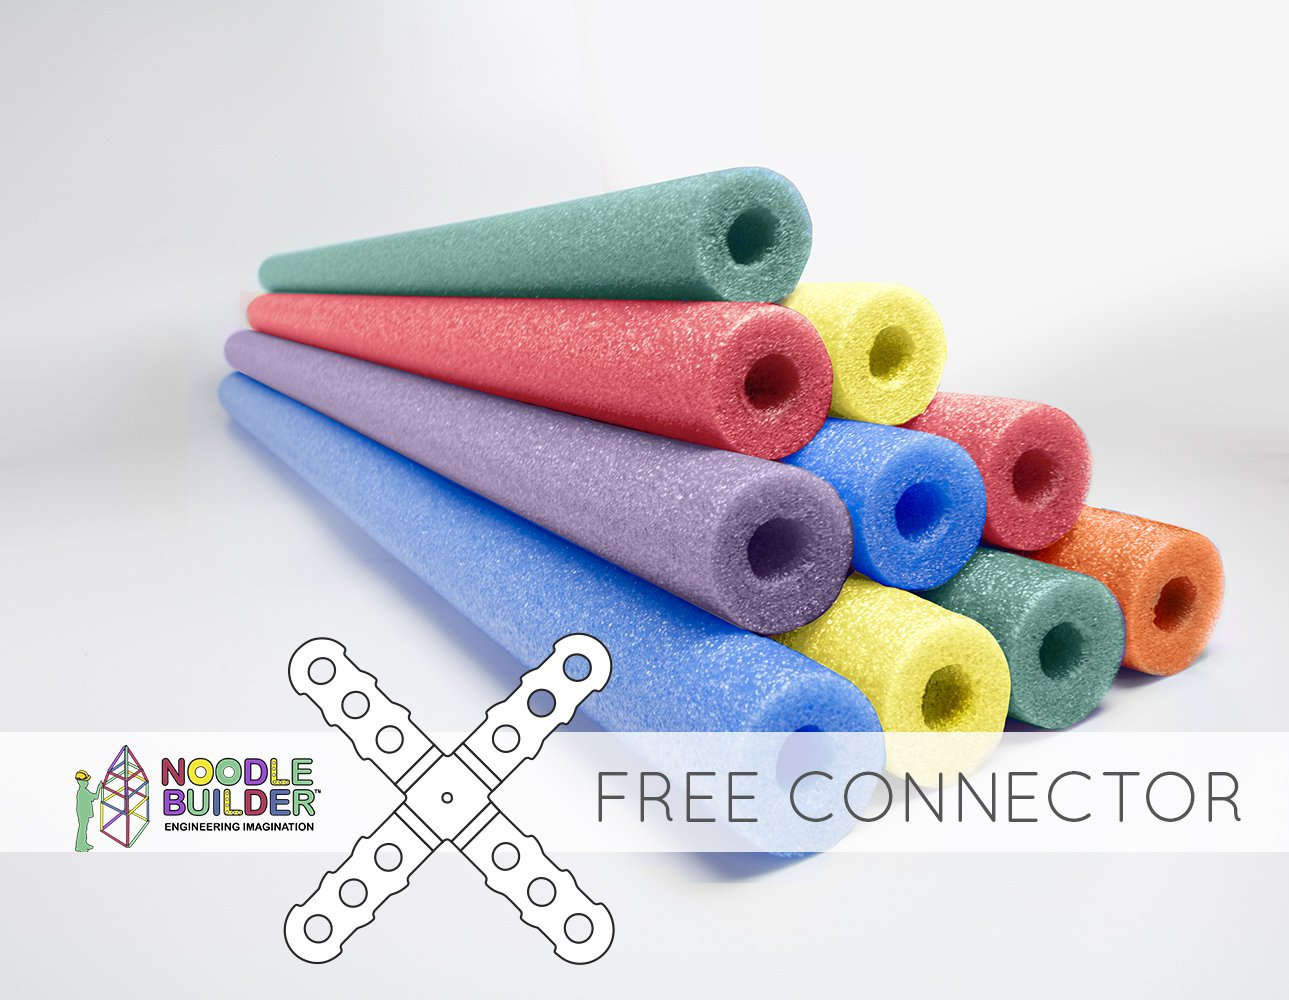 Oodles of Noodles Deluxe Foam Pool Swim Noodles - 10 Pack 52 Inch Wholesale Pricing Bulk Pack and Free Connector by Oodles of Noodles